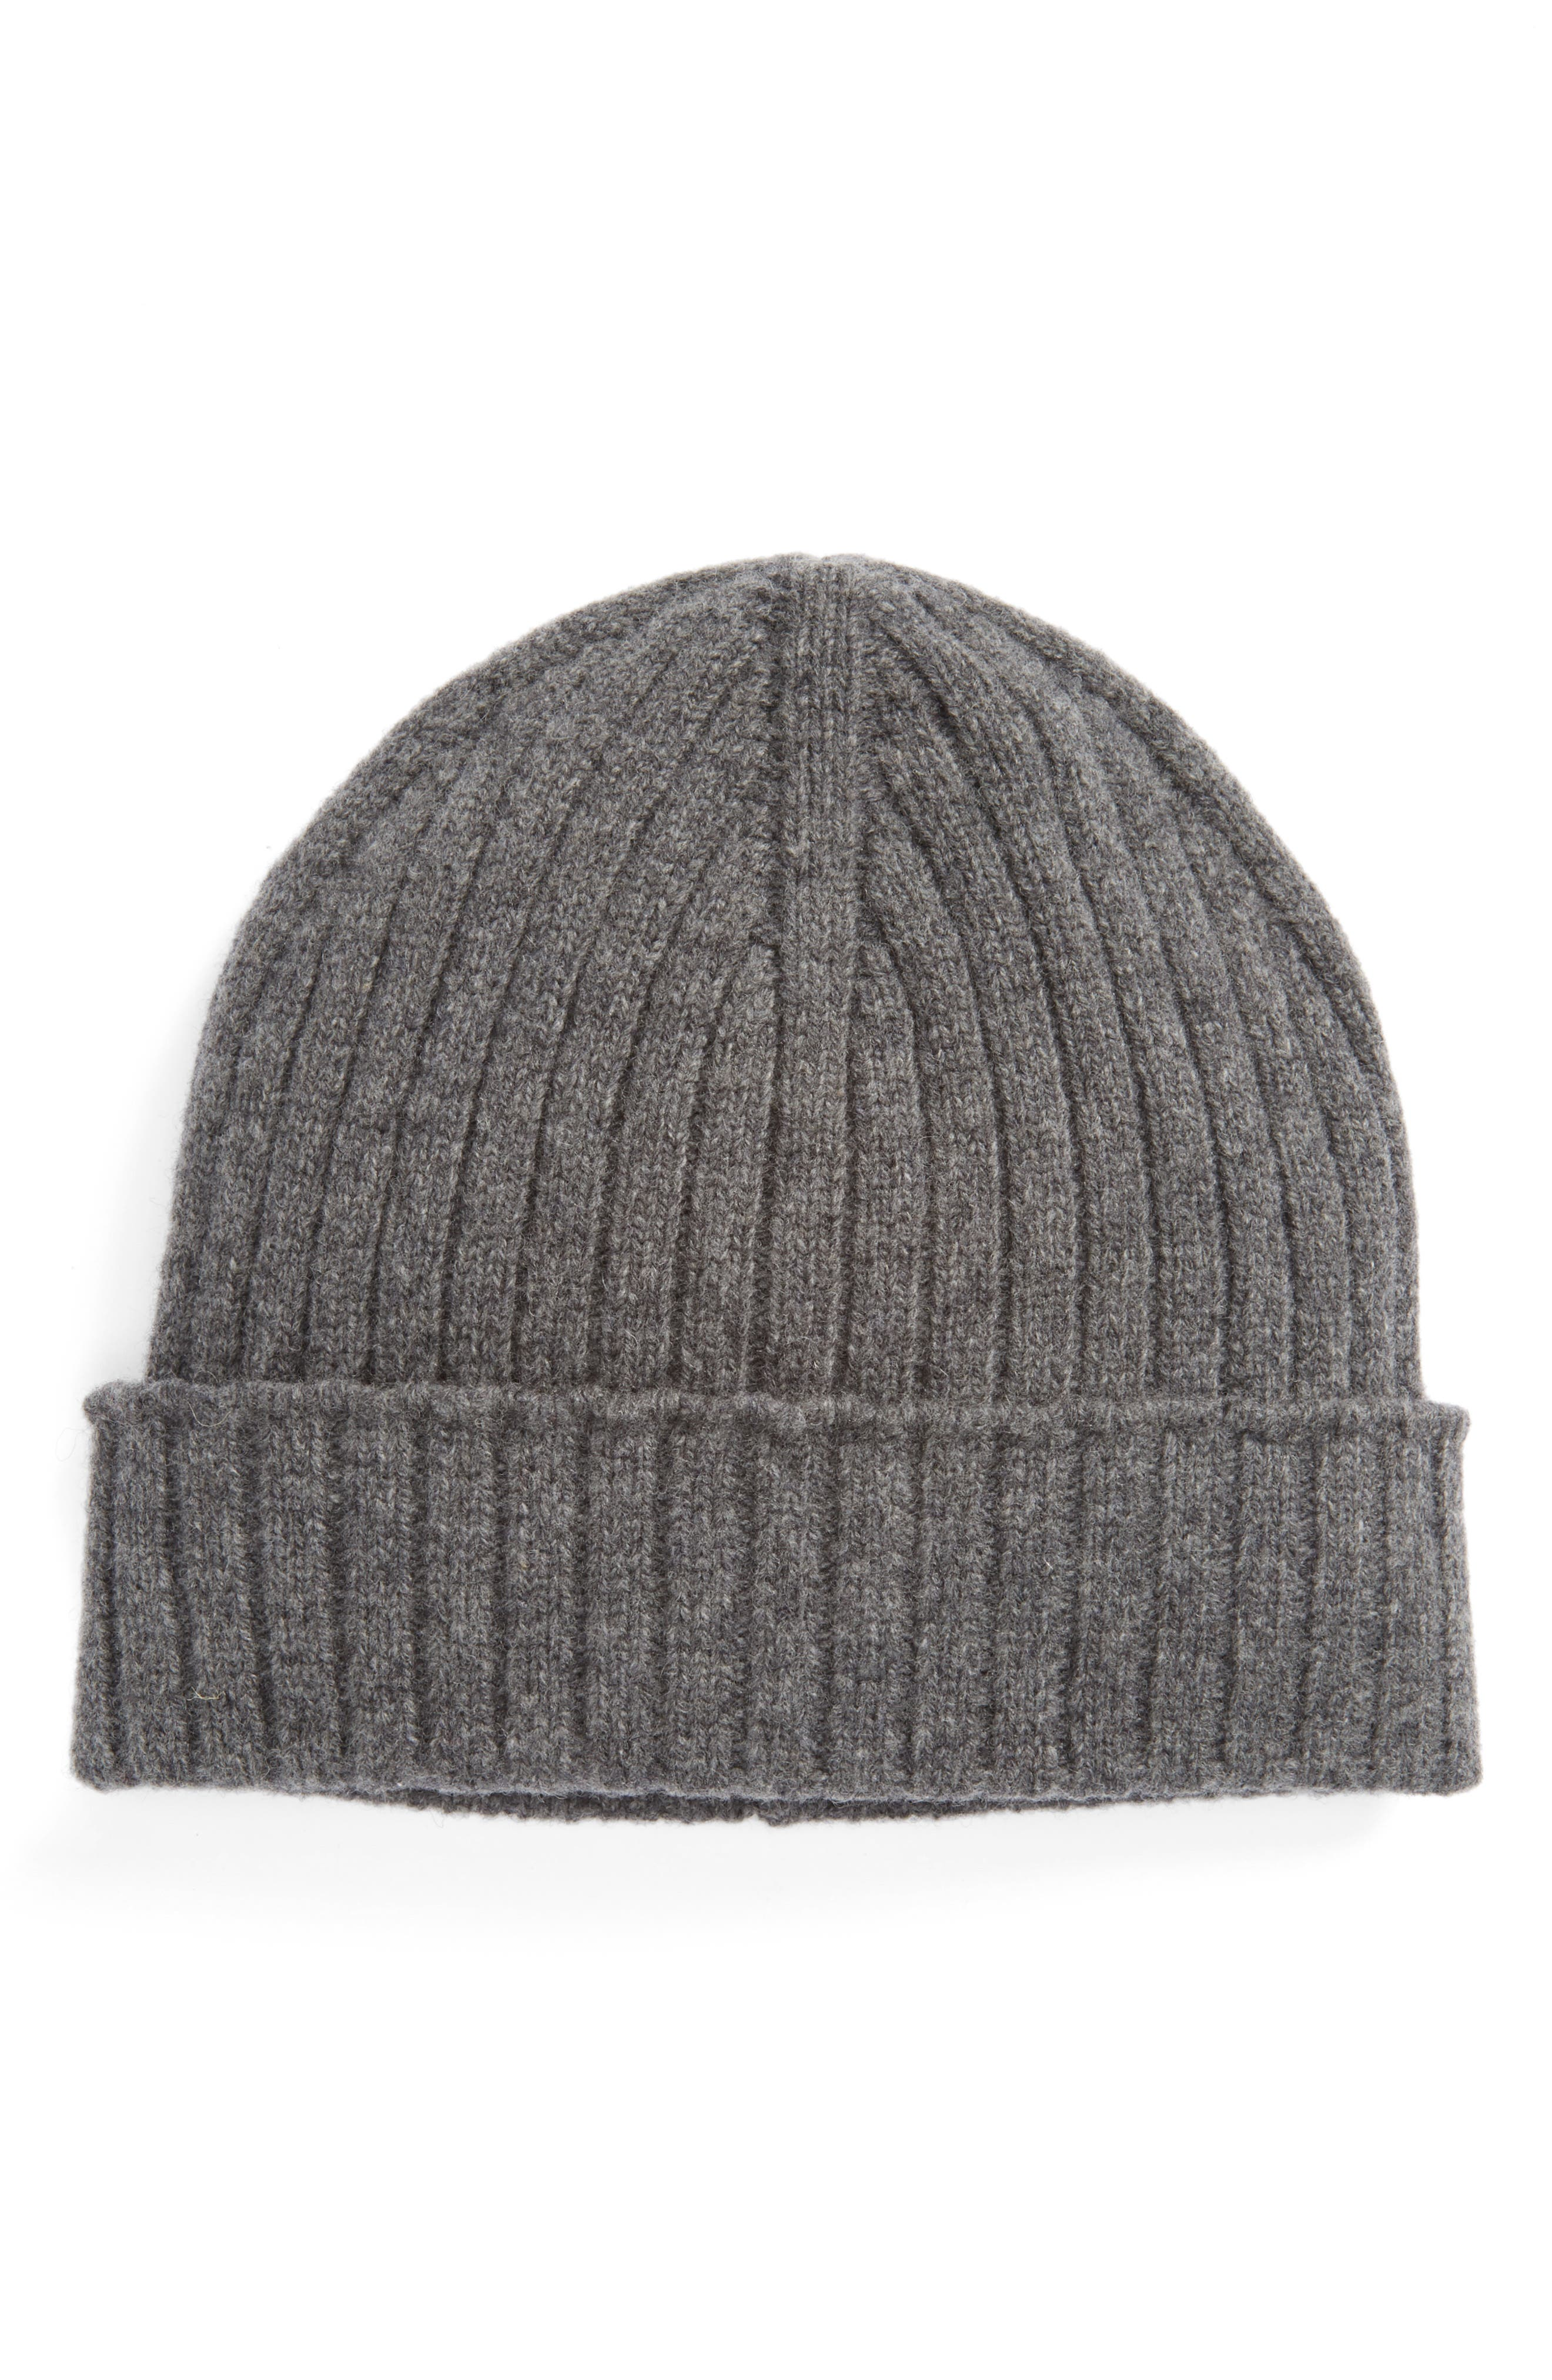 A.P.C. Wool Knit Cap